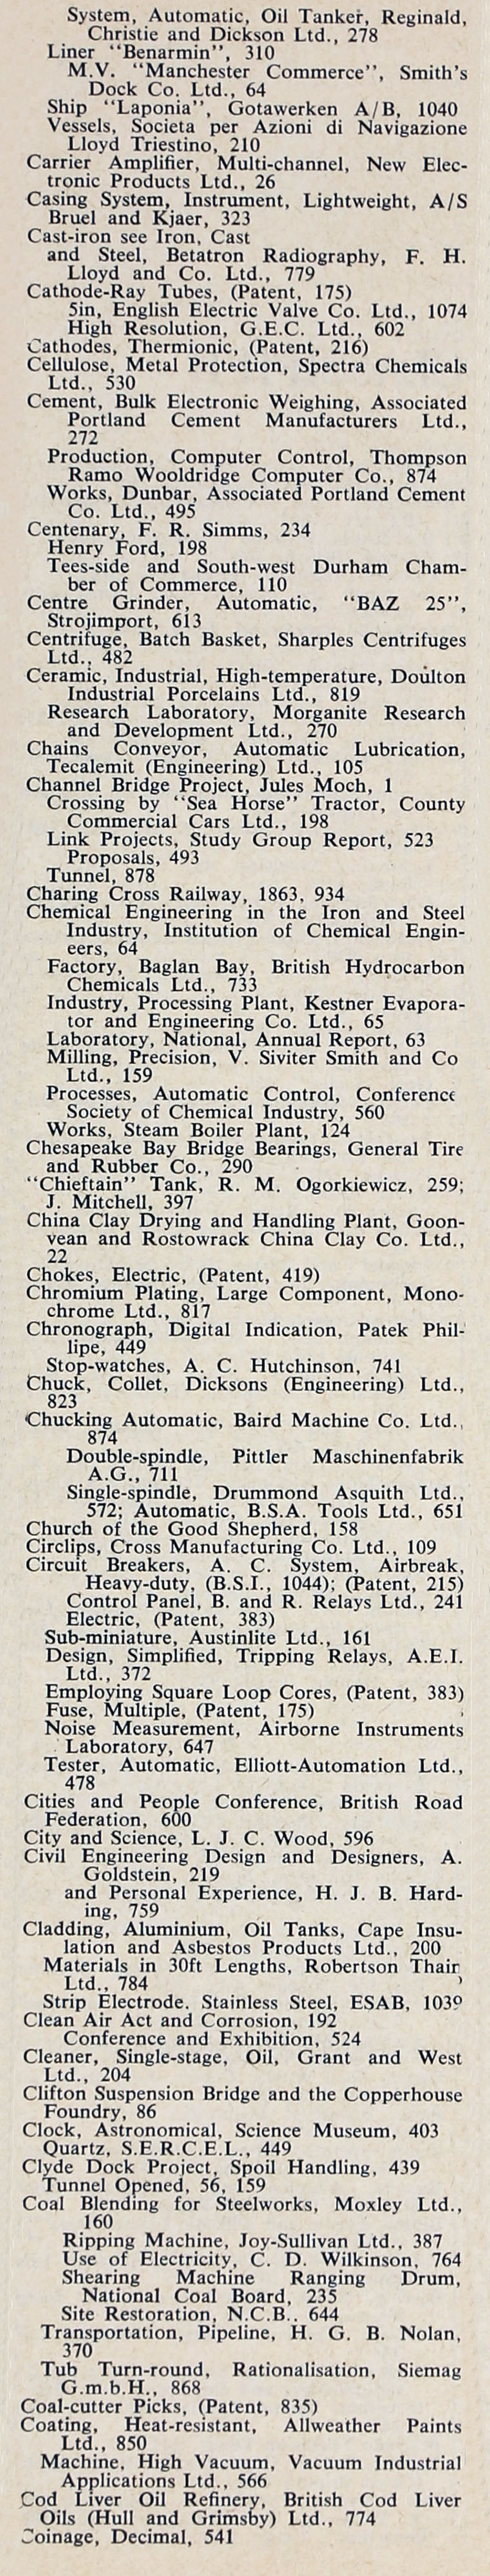 The Engineer 1963 Jul-Dec: Index: Sections 2 and 3